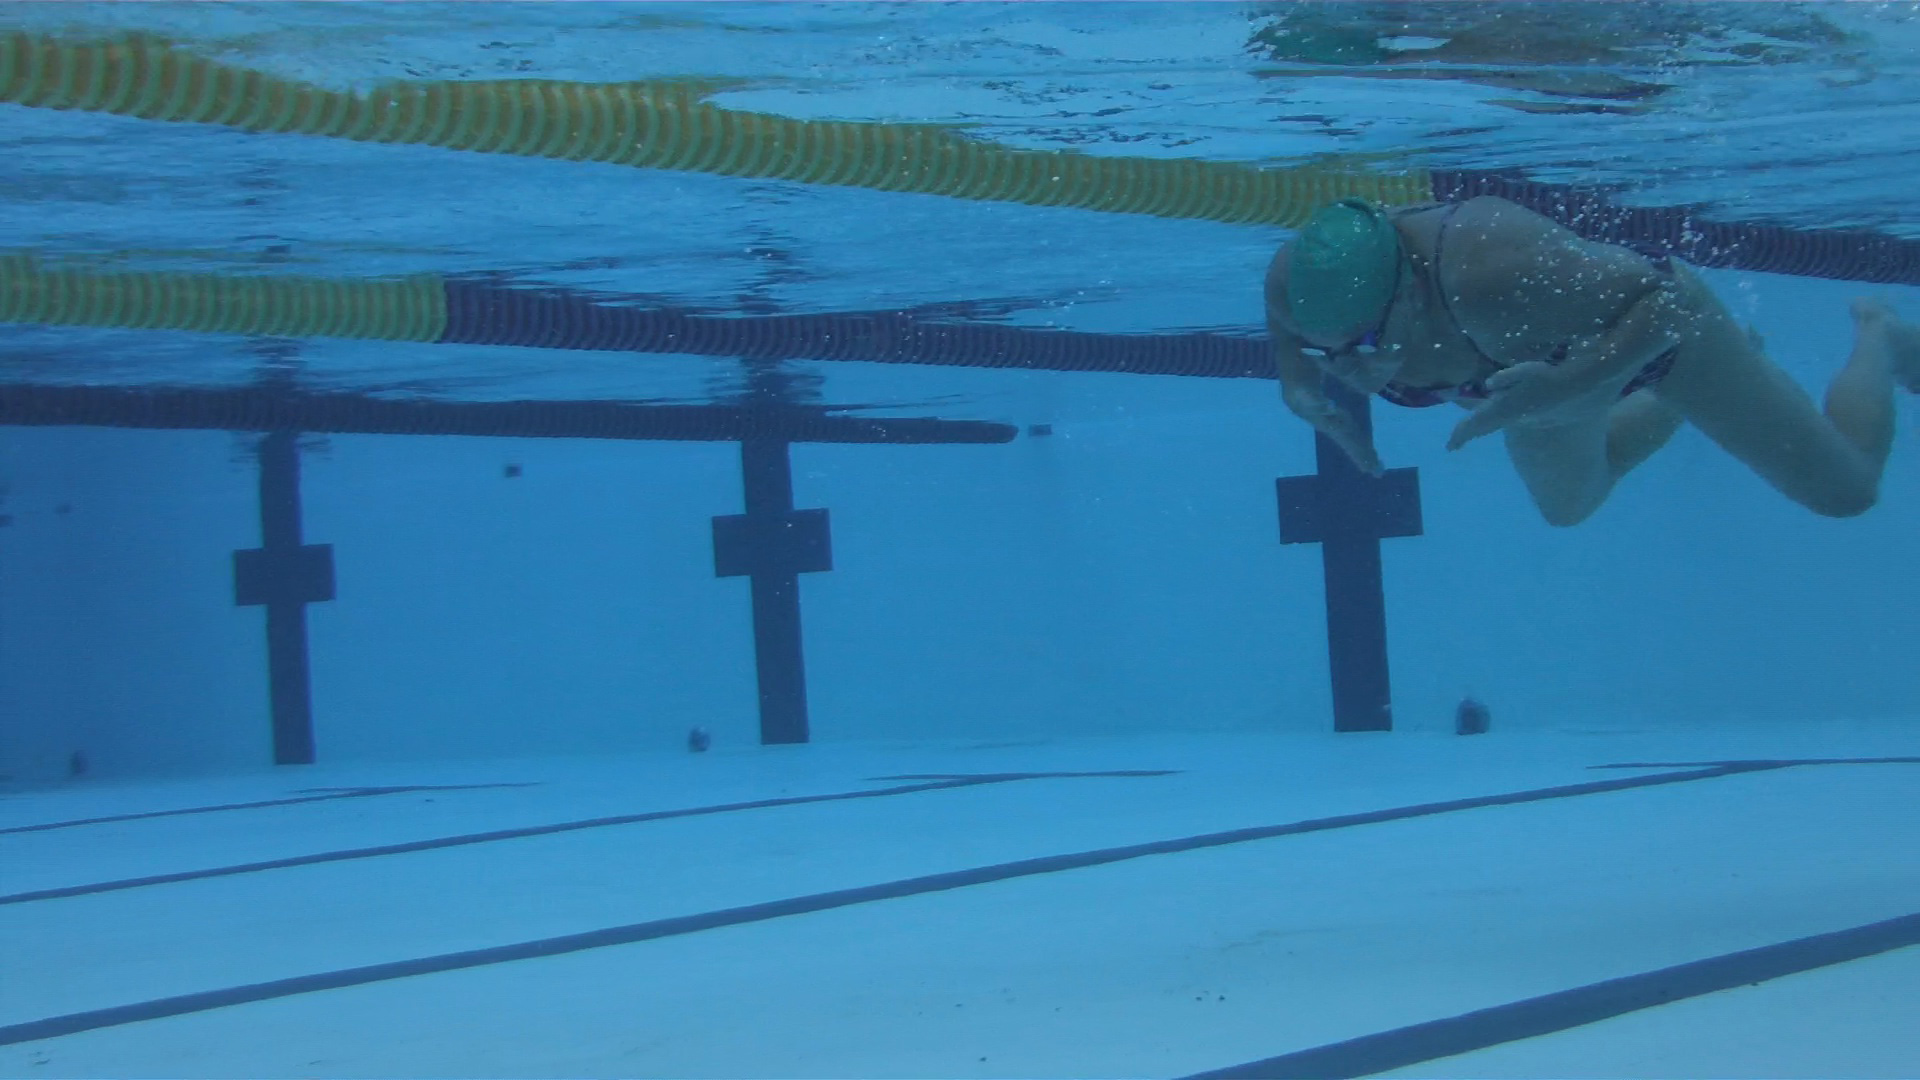 The underwater recovery should be narrow